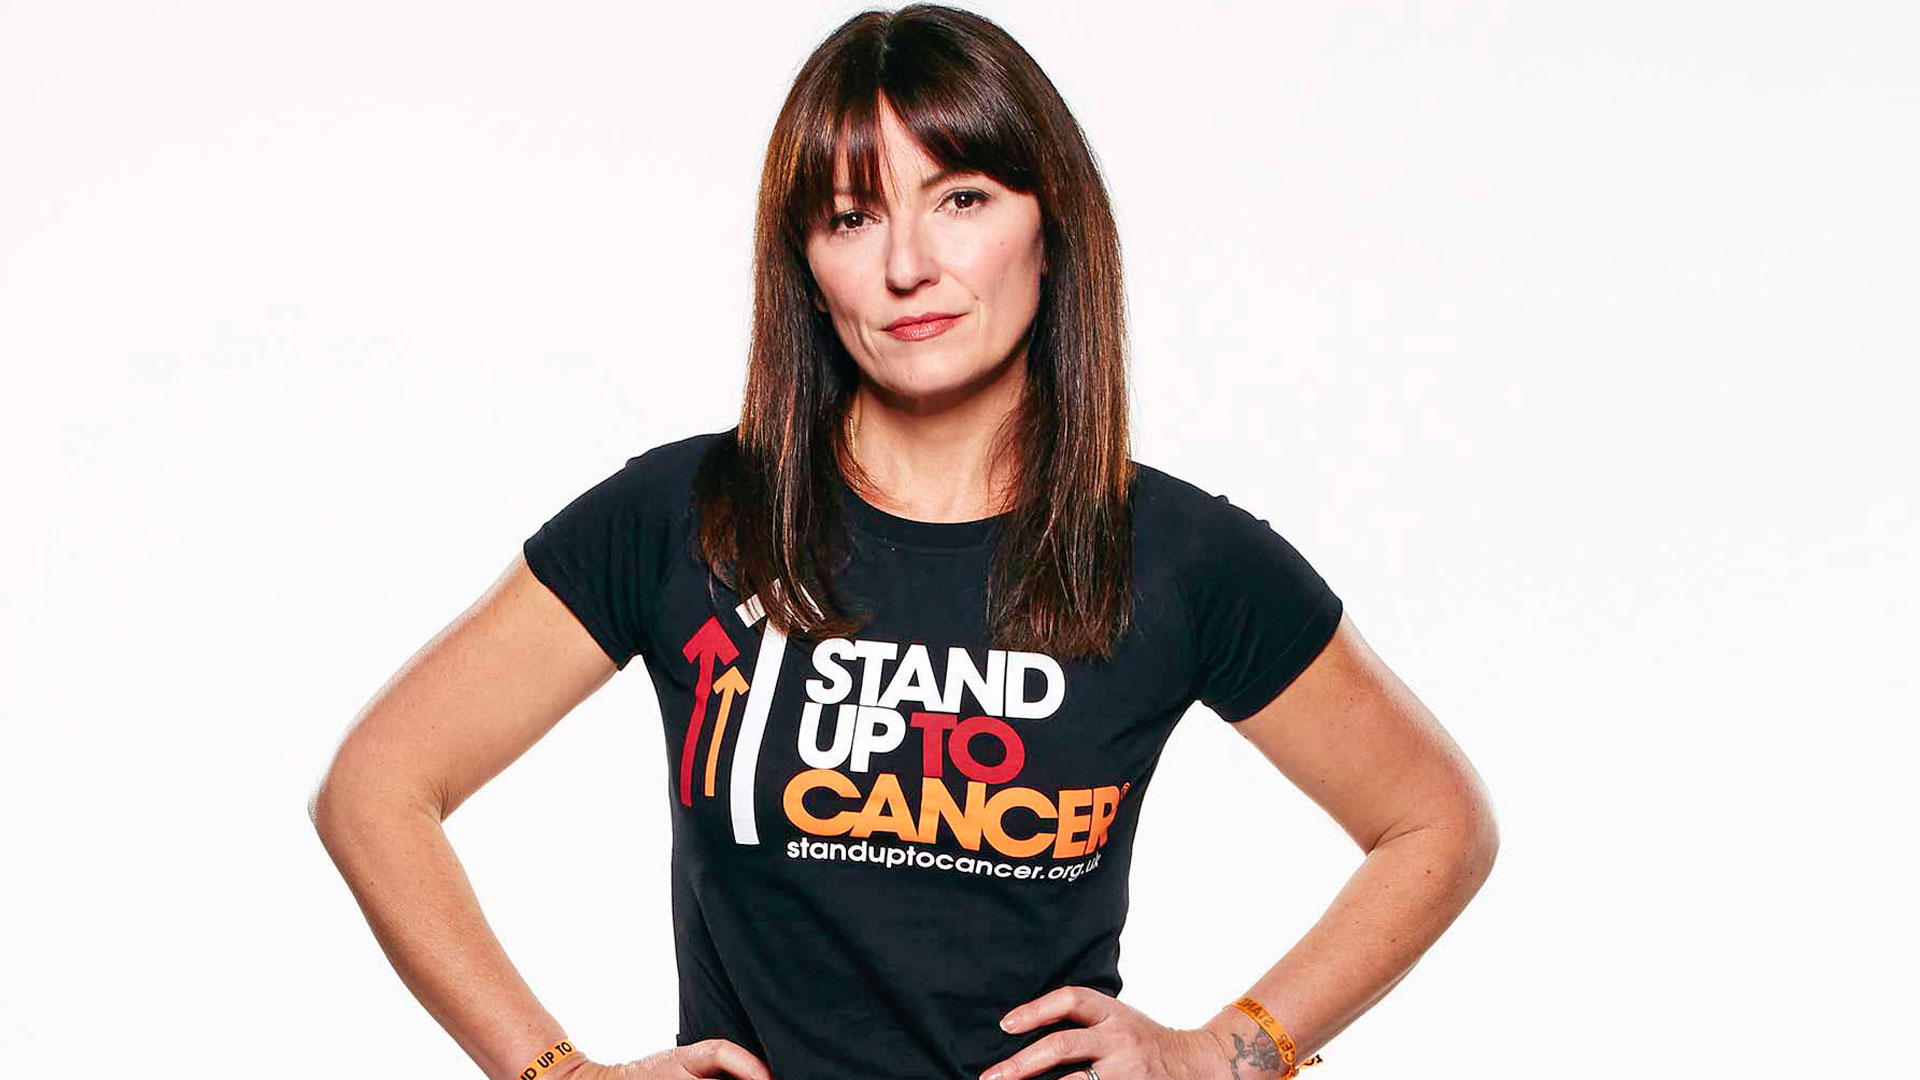 stand up to cancer all 4